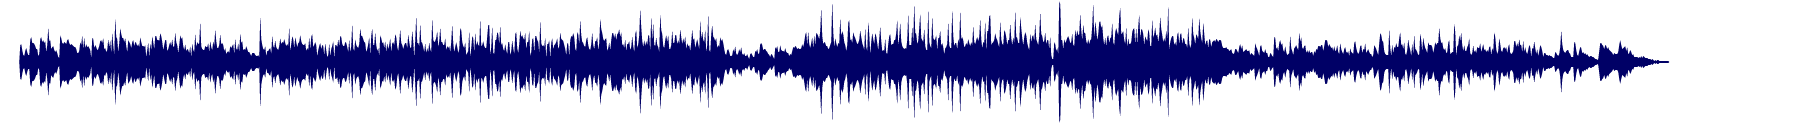 waveform of track #77556